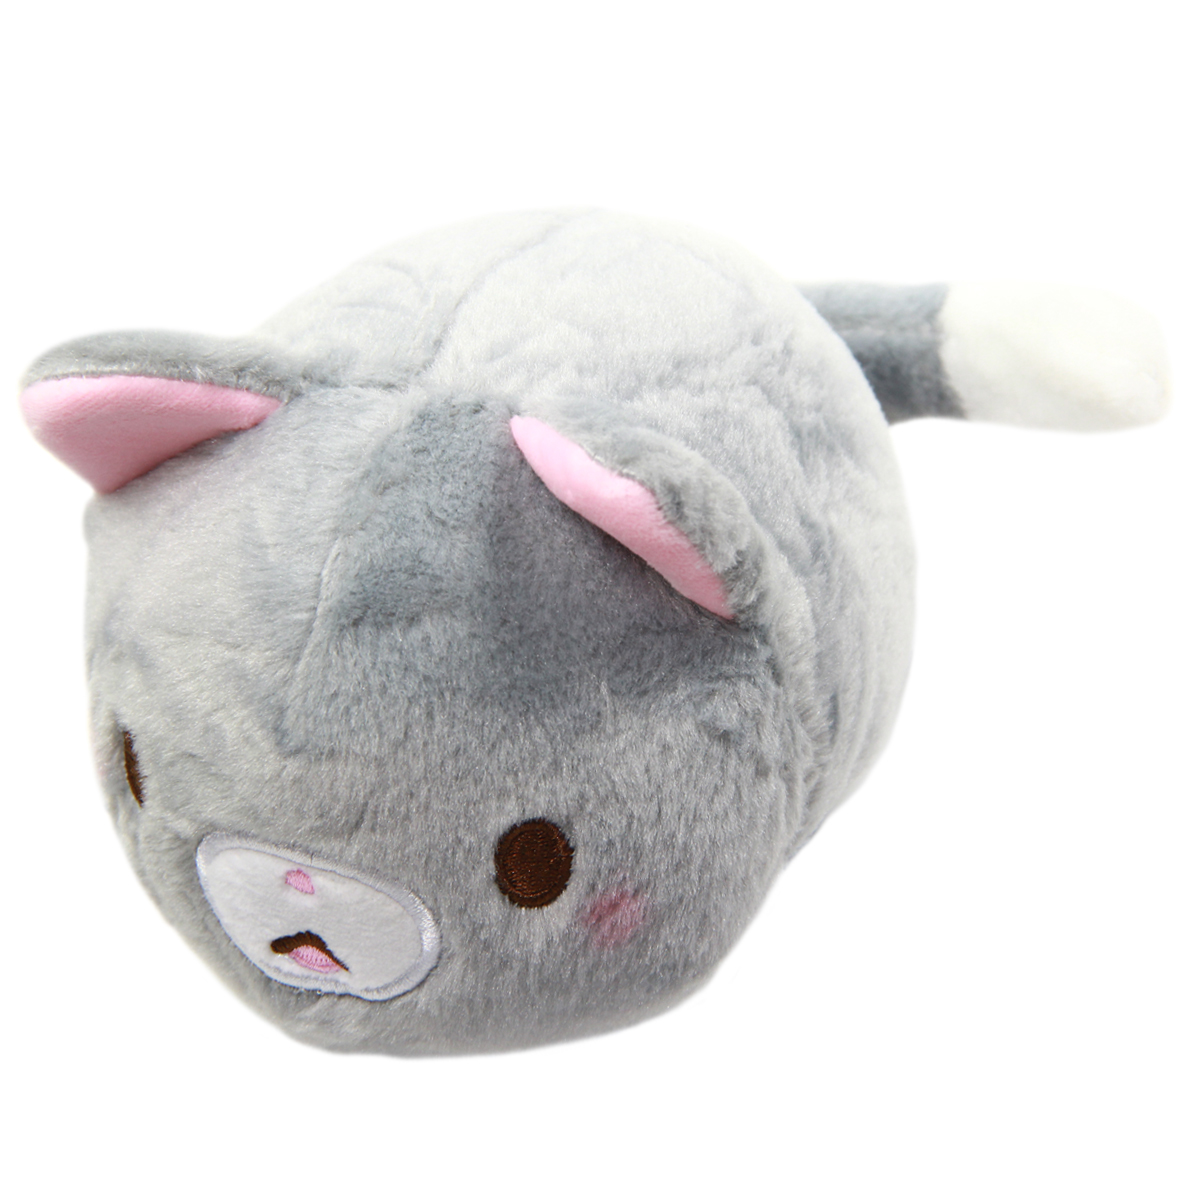 Kawaii Neko Plushie Grey Cat Plush Doll Super Soft Stuffed Animal Standard Size 6